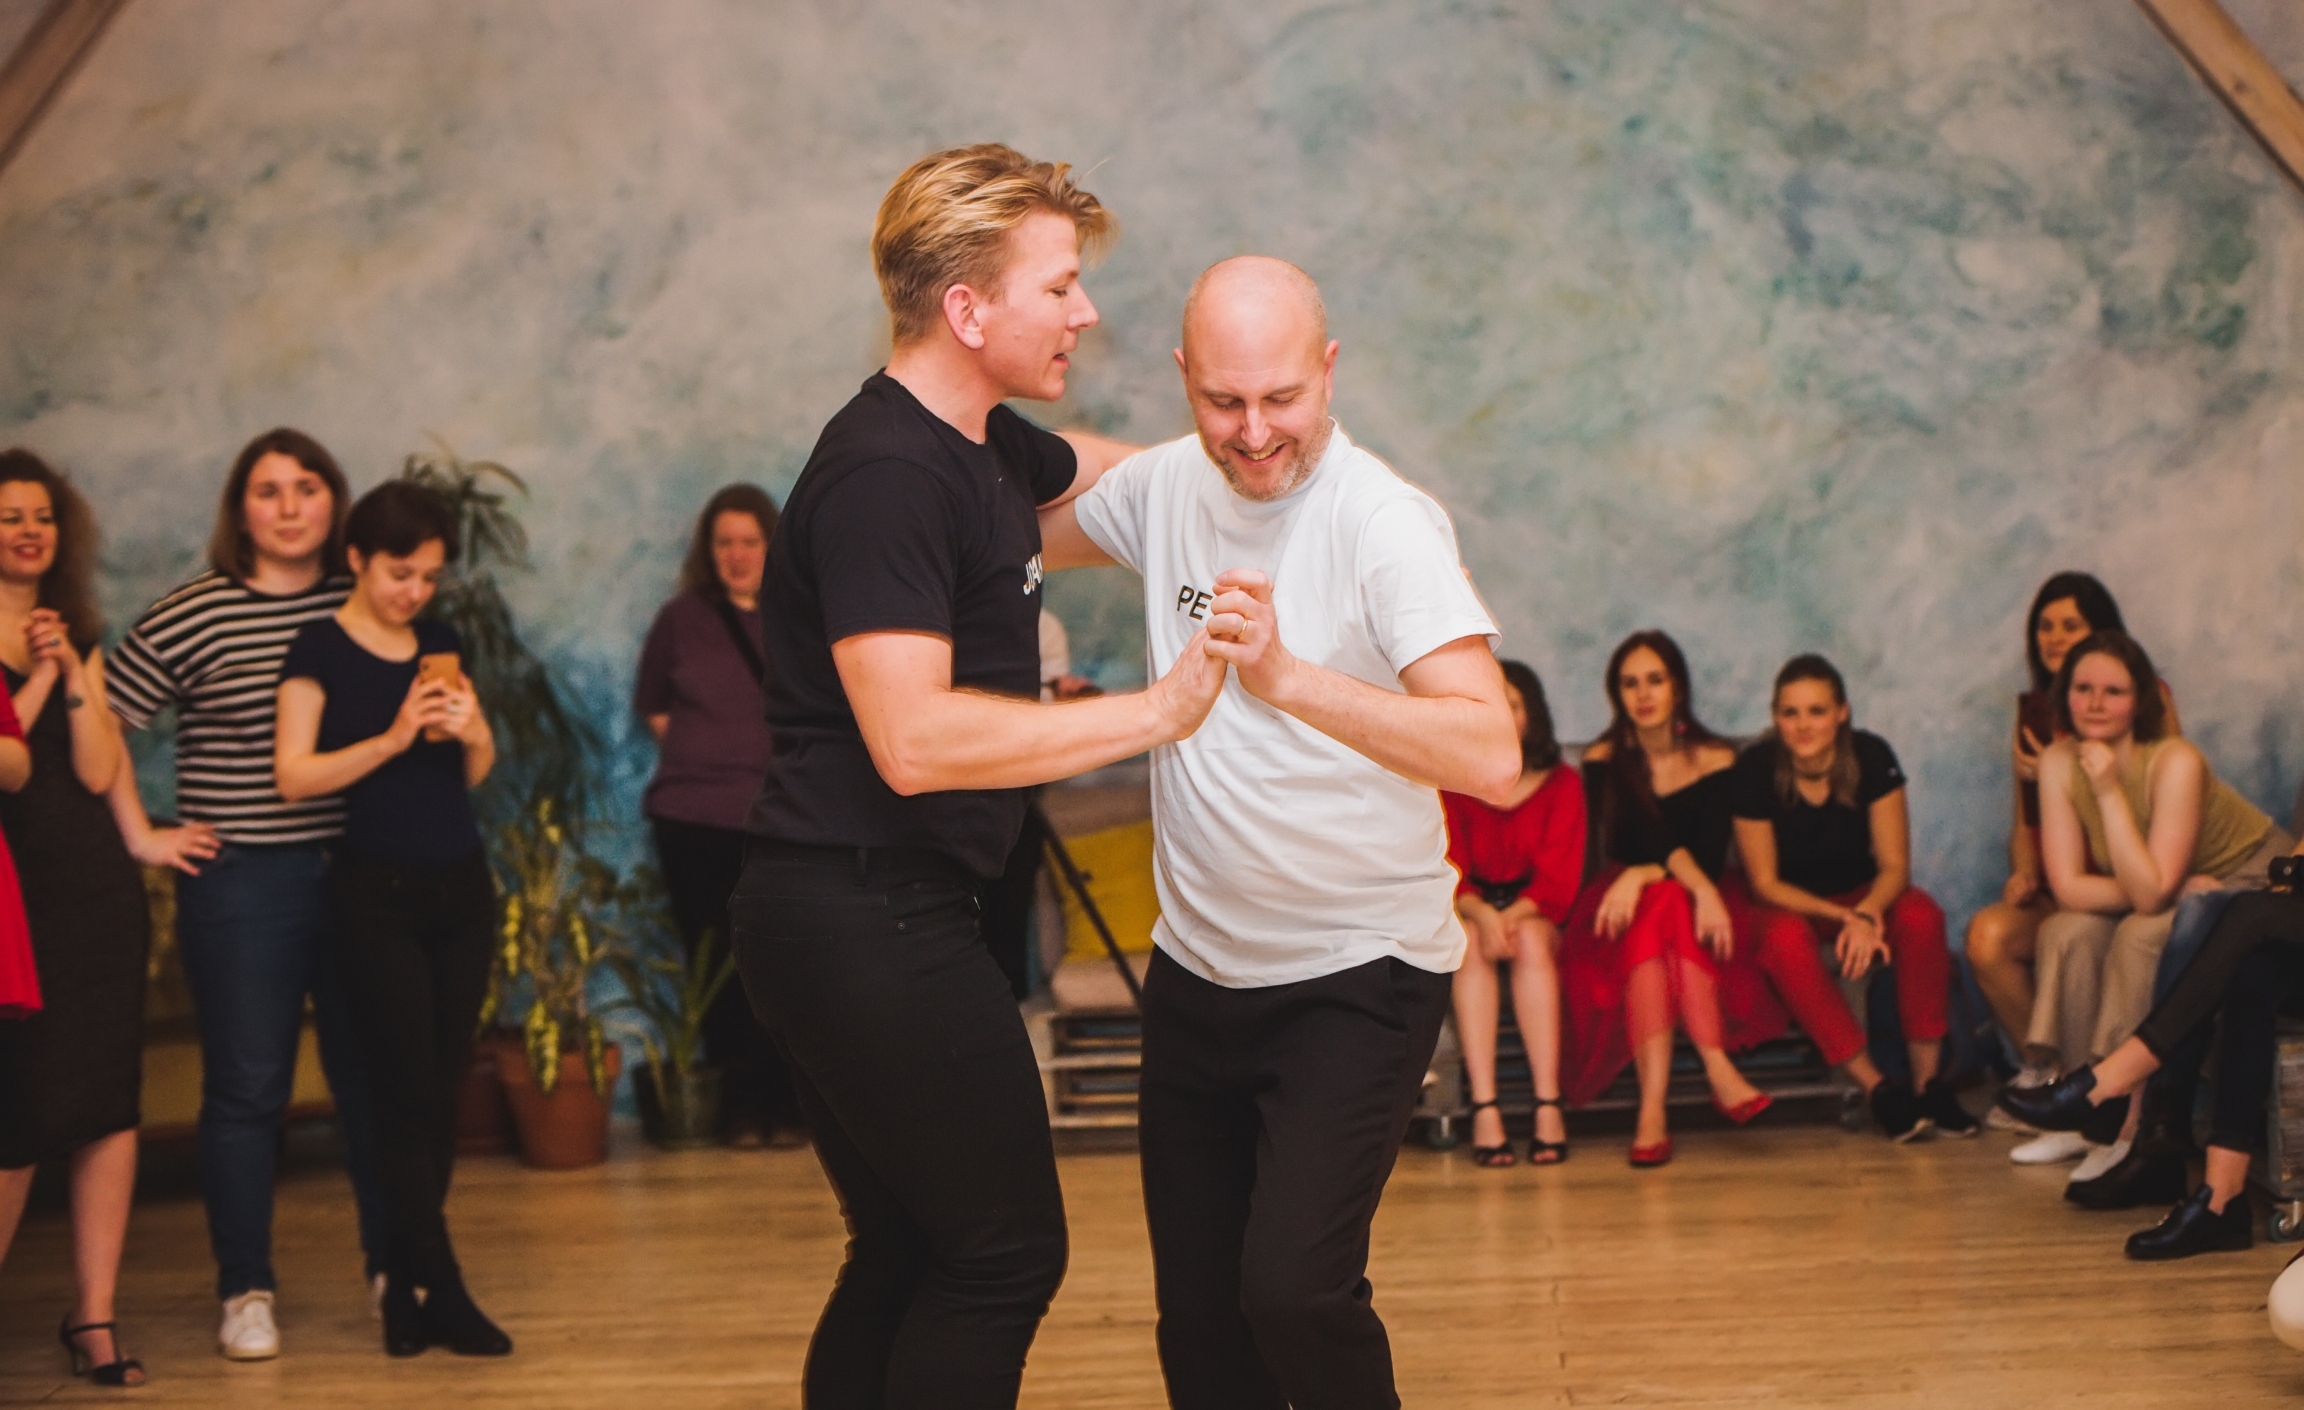 A salsa instructor dances with a student.